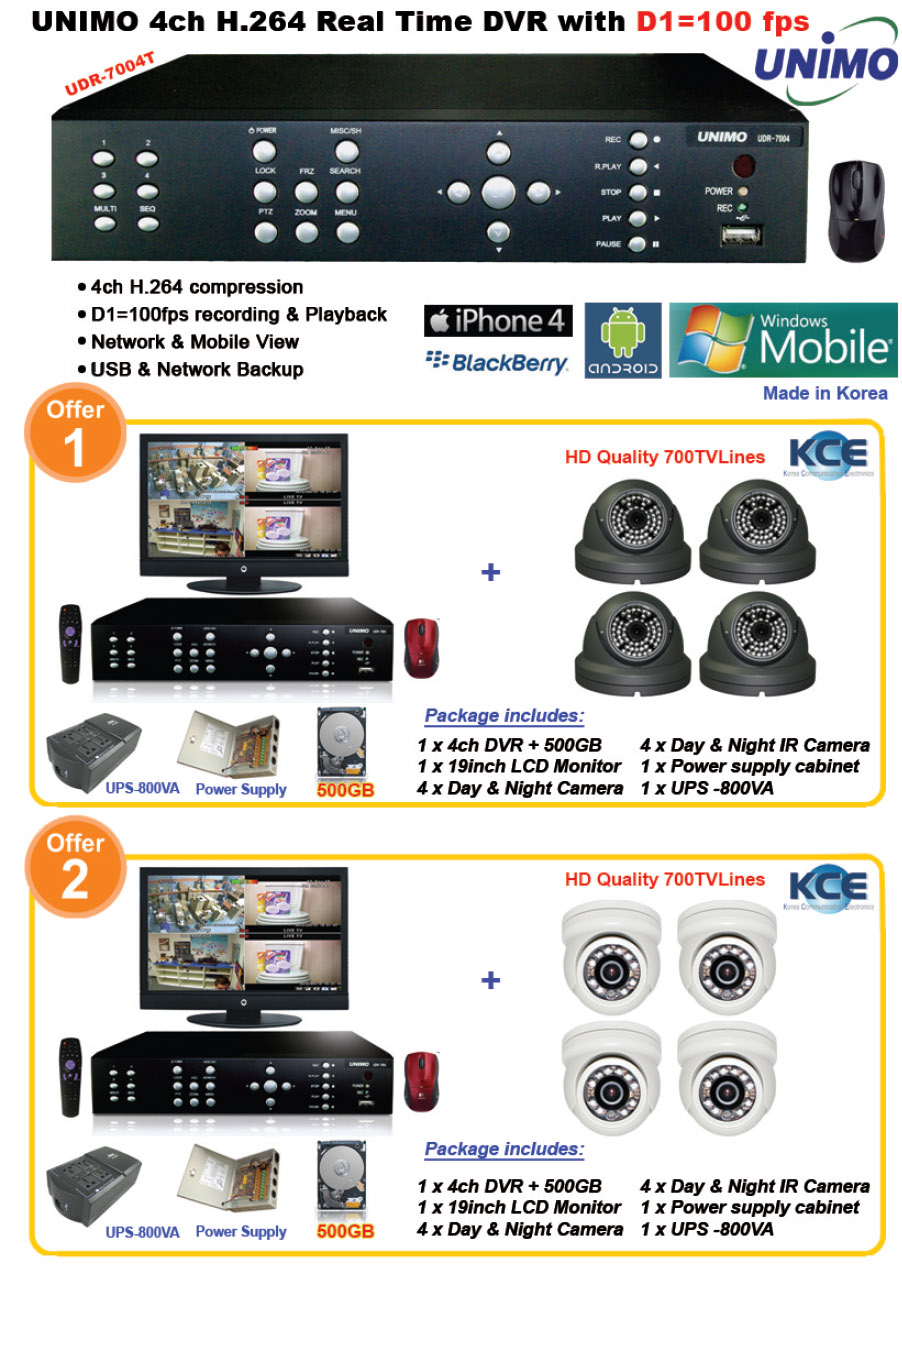 CCTV Security Offer